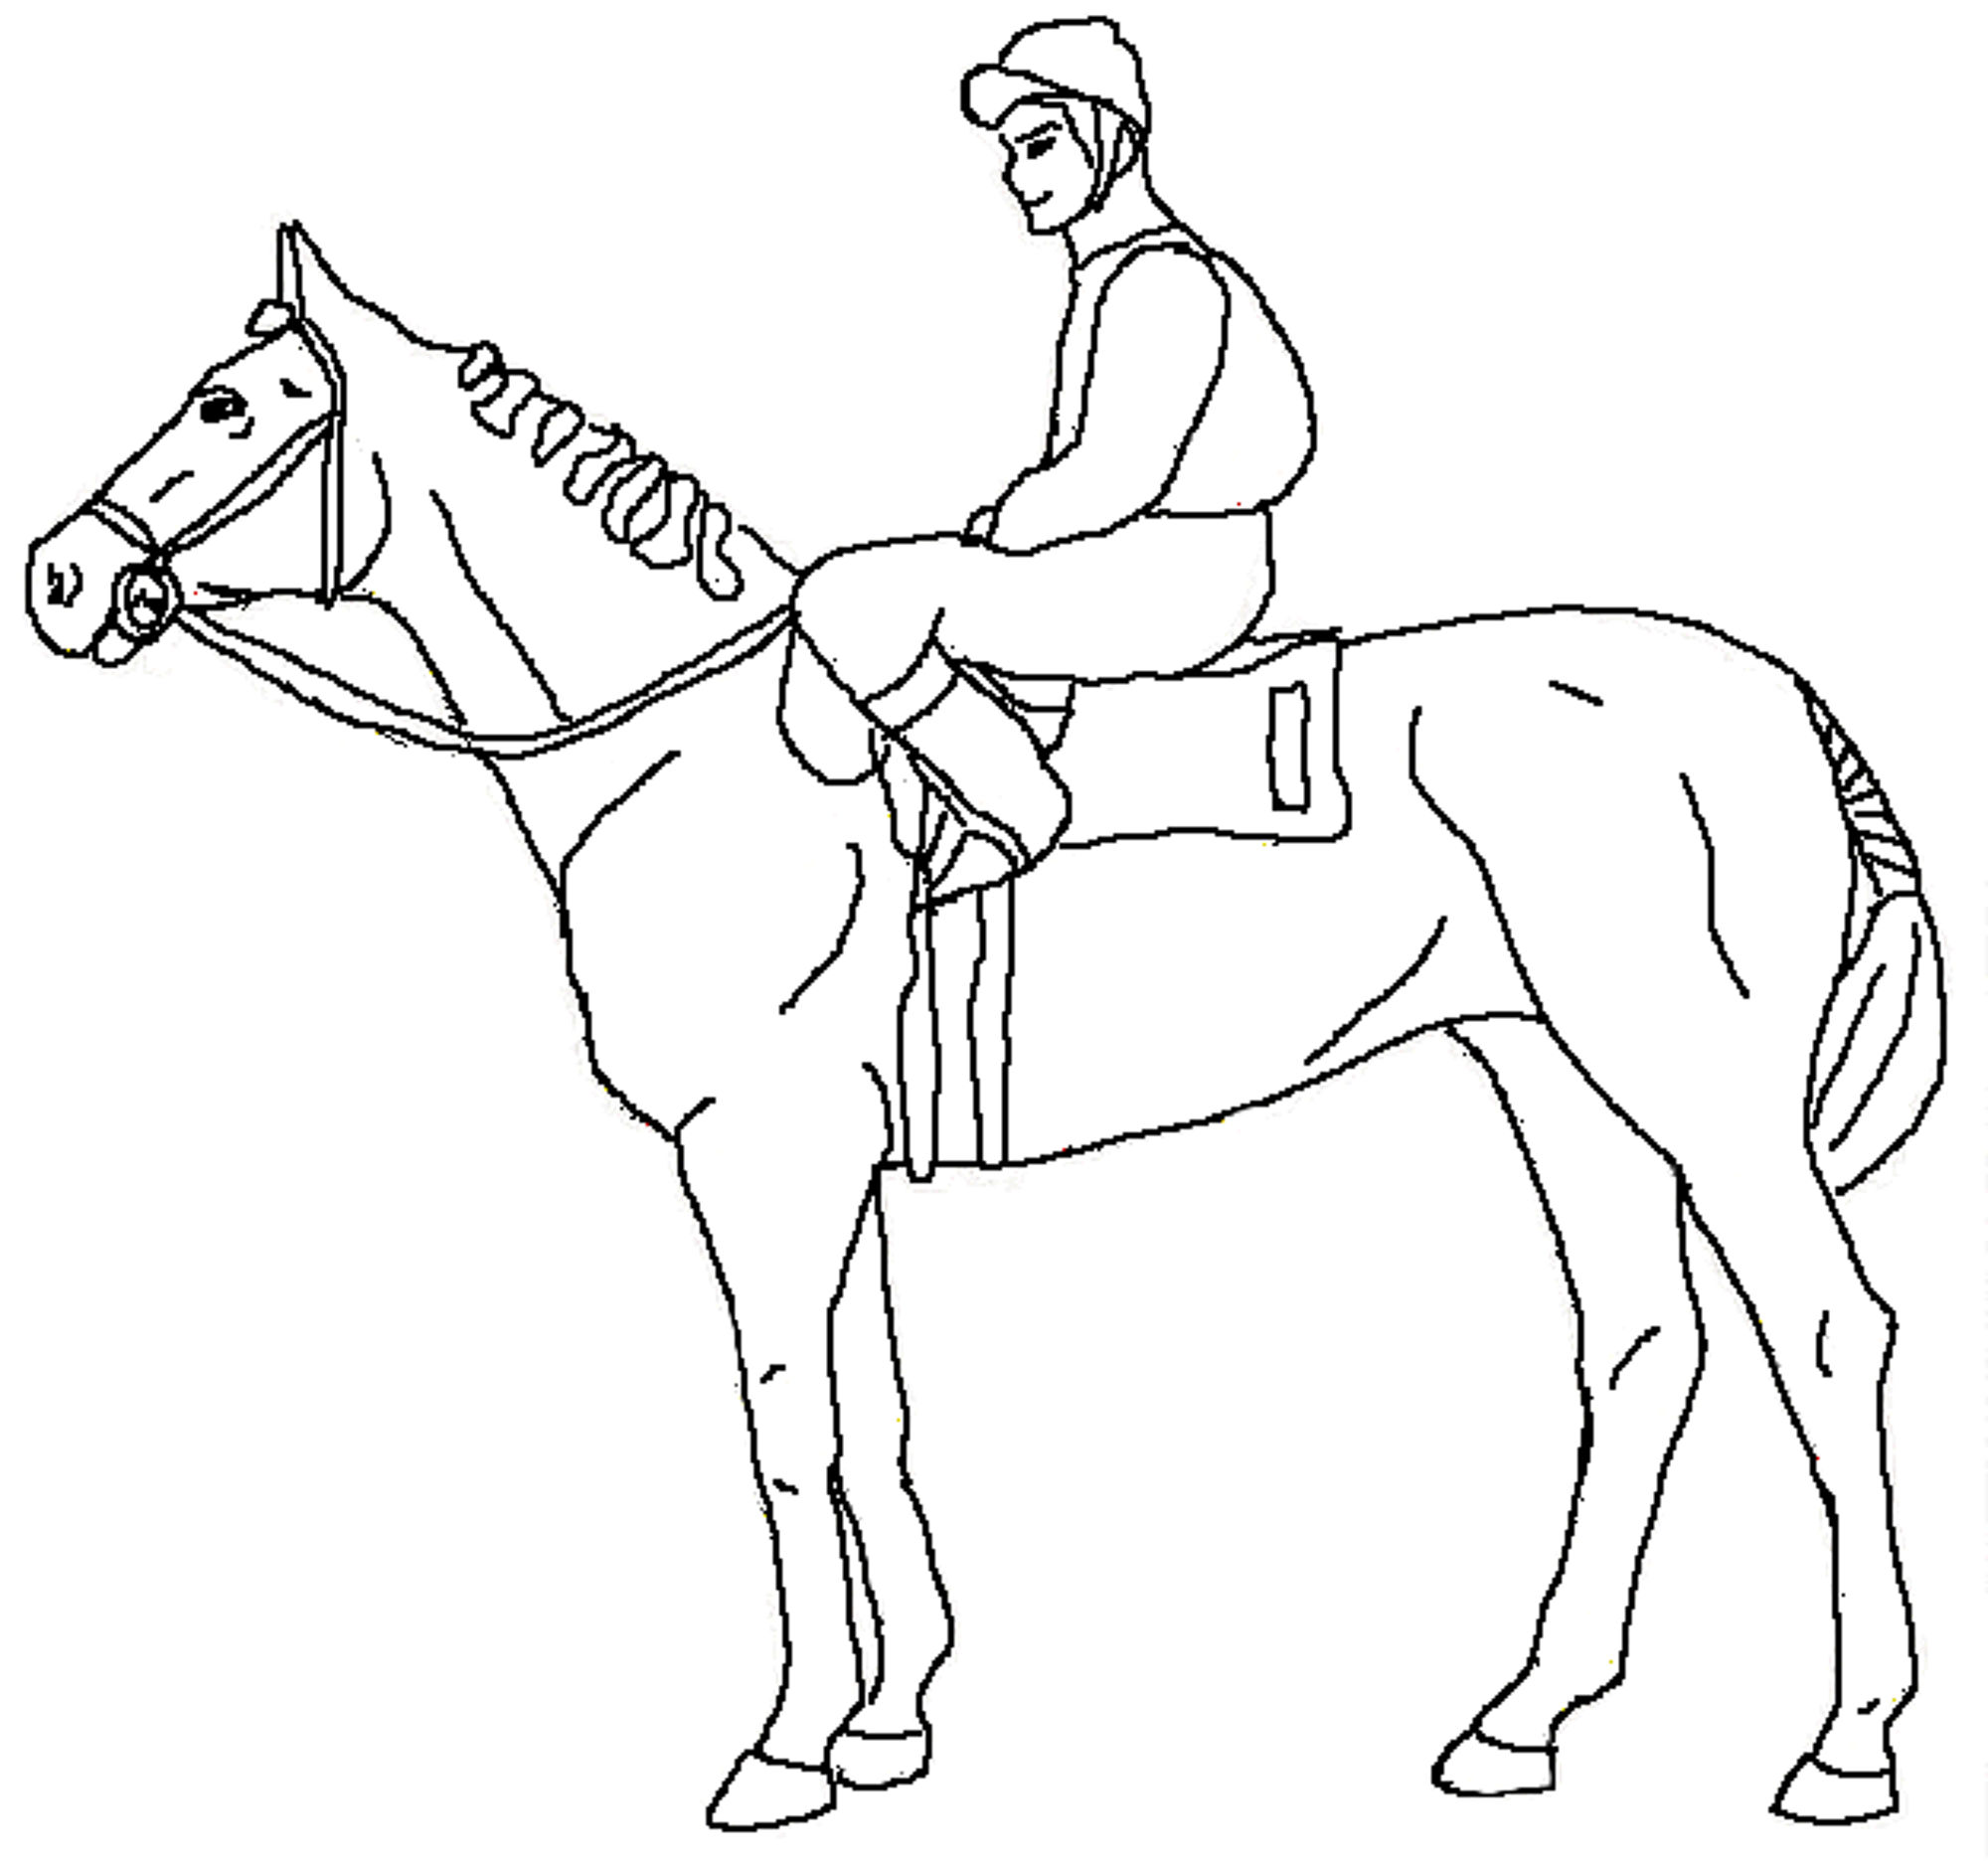 horse coloring book pages horse coloring pages for kids coloring pages for kids horse pages coloring book